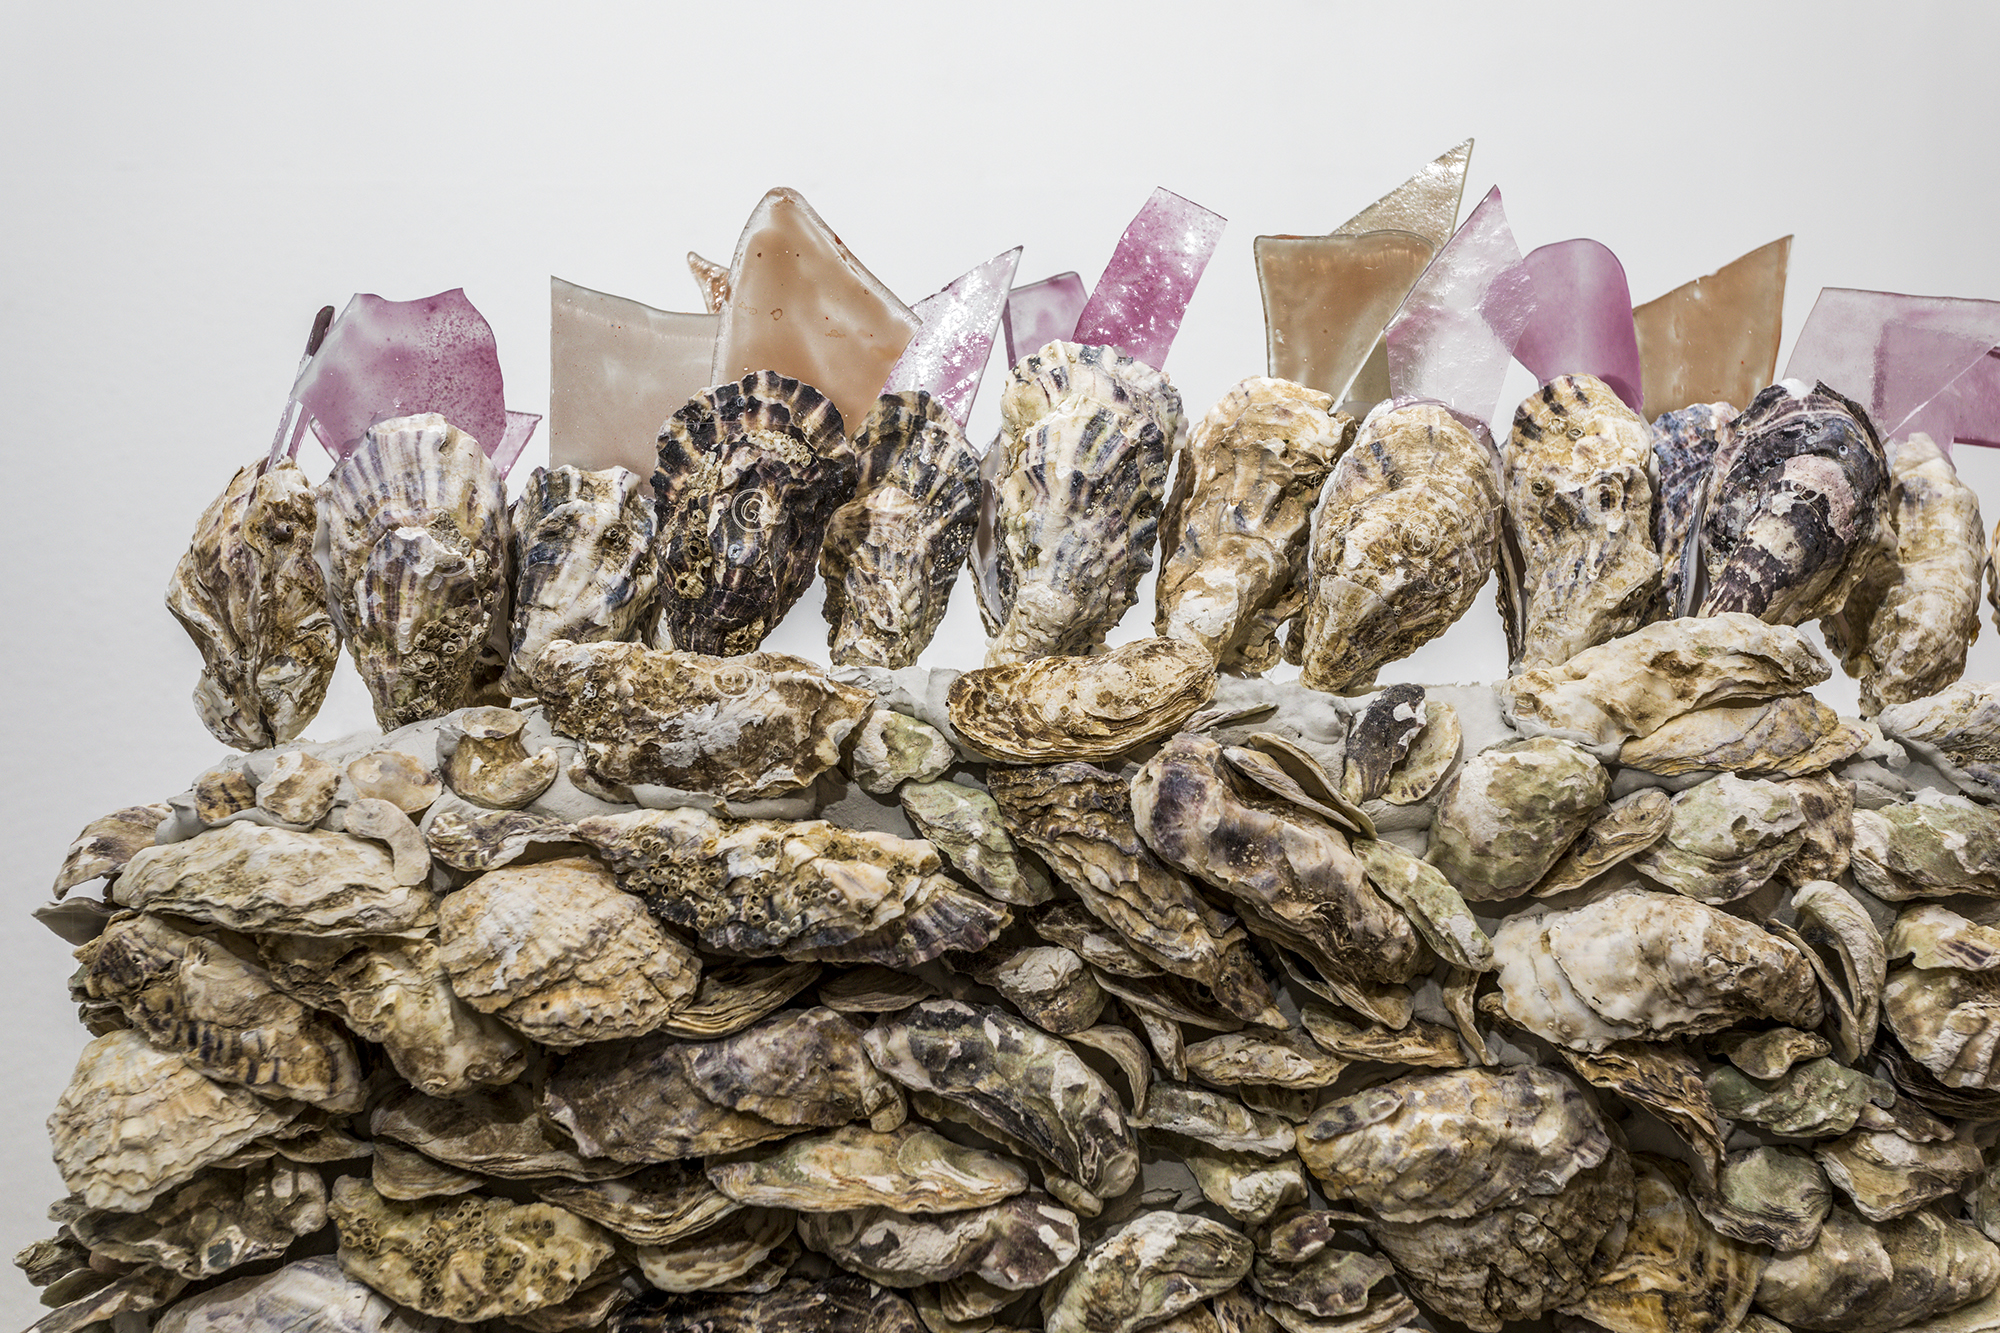 Giuseppina Giordano,THE WALL OF DELICACY (ode to China), 2018 / oyster shells, glass / 250x190x60 cm